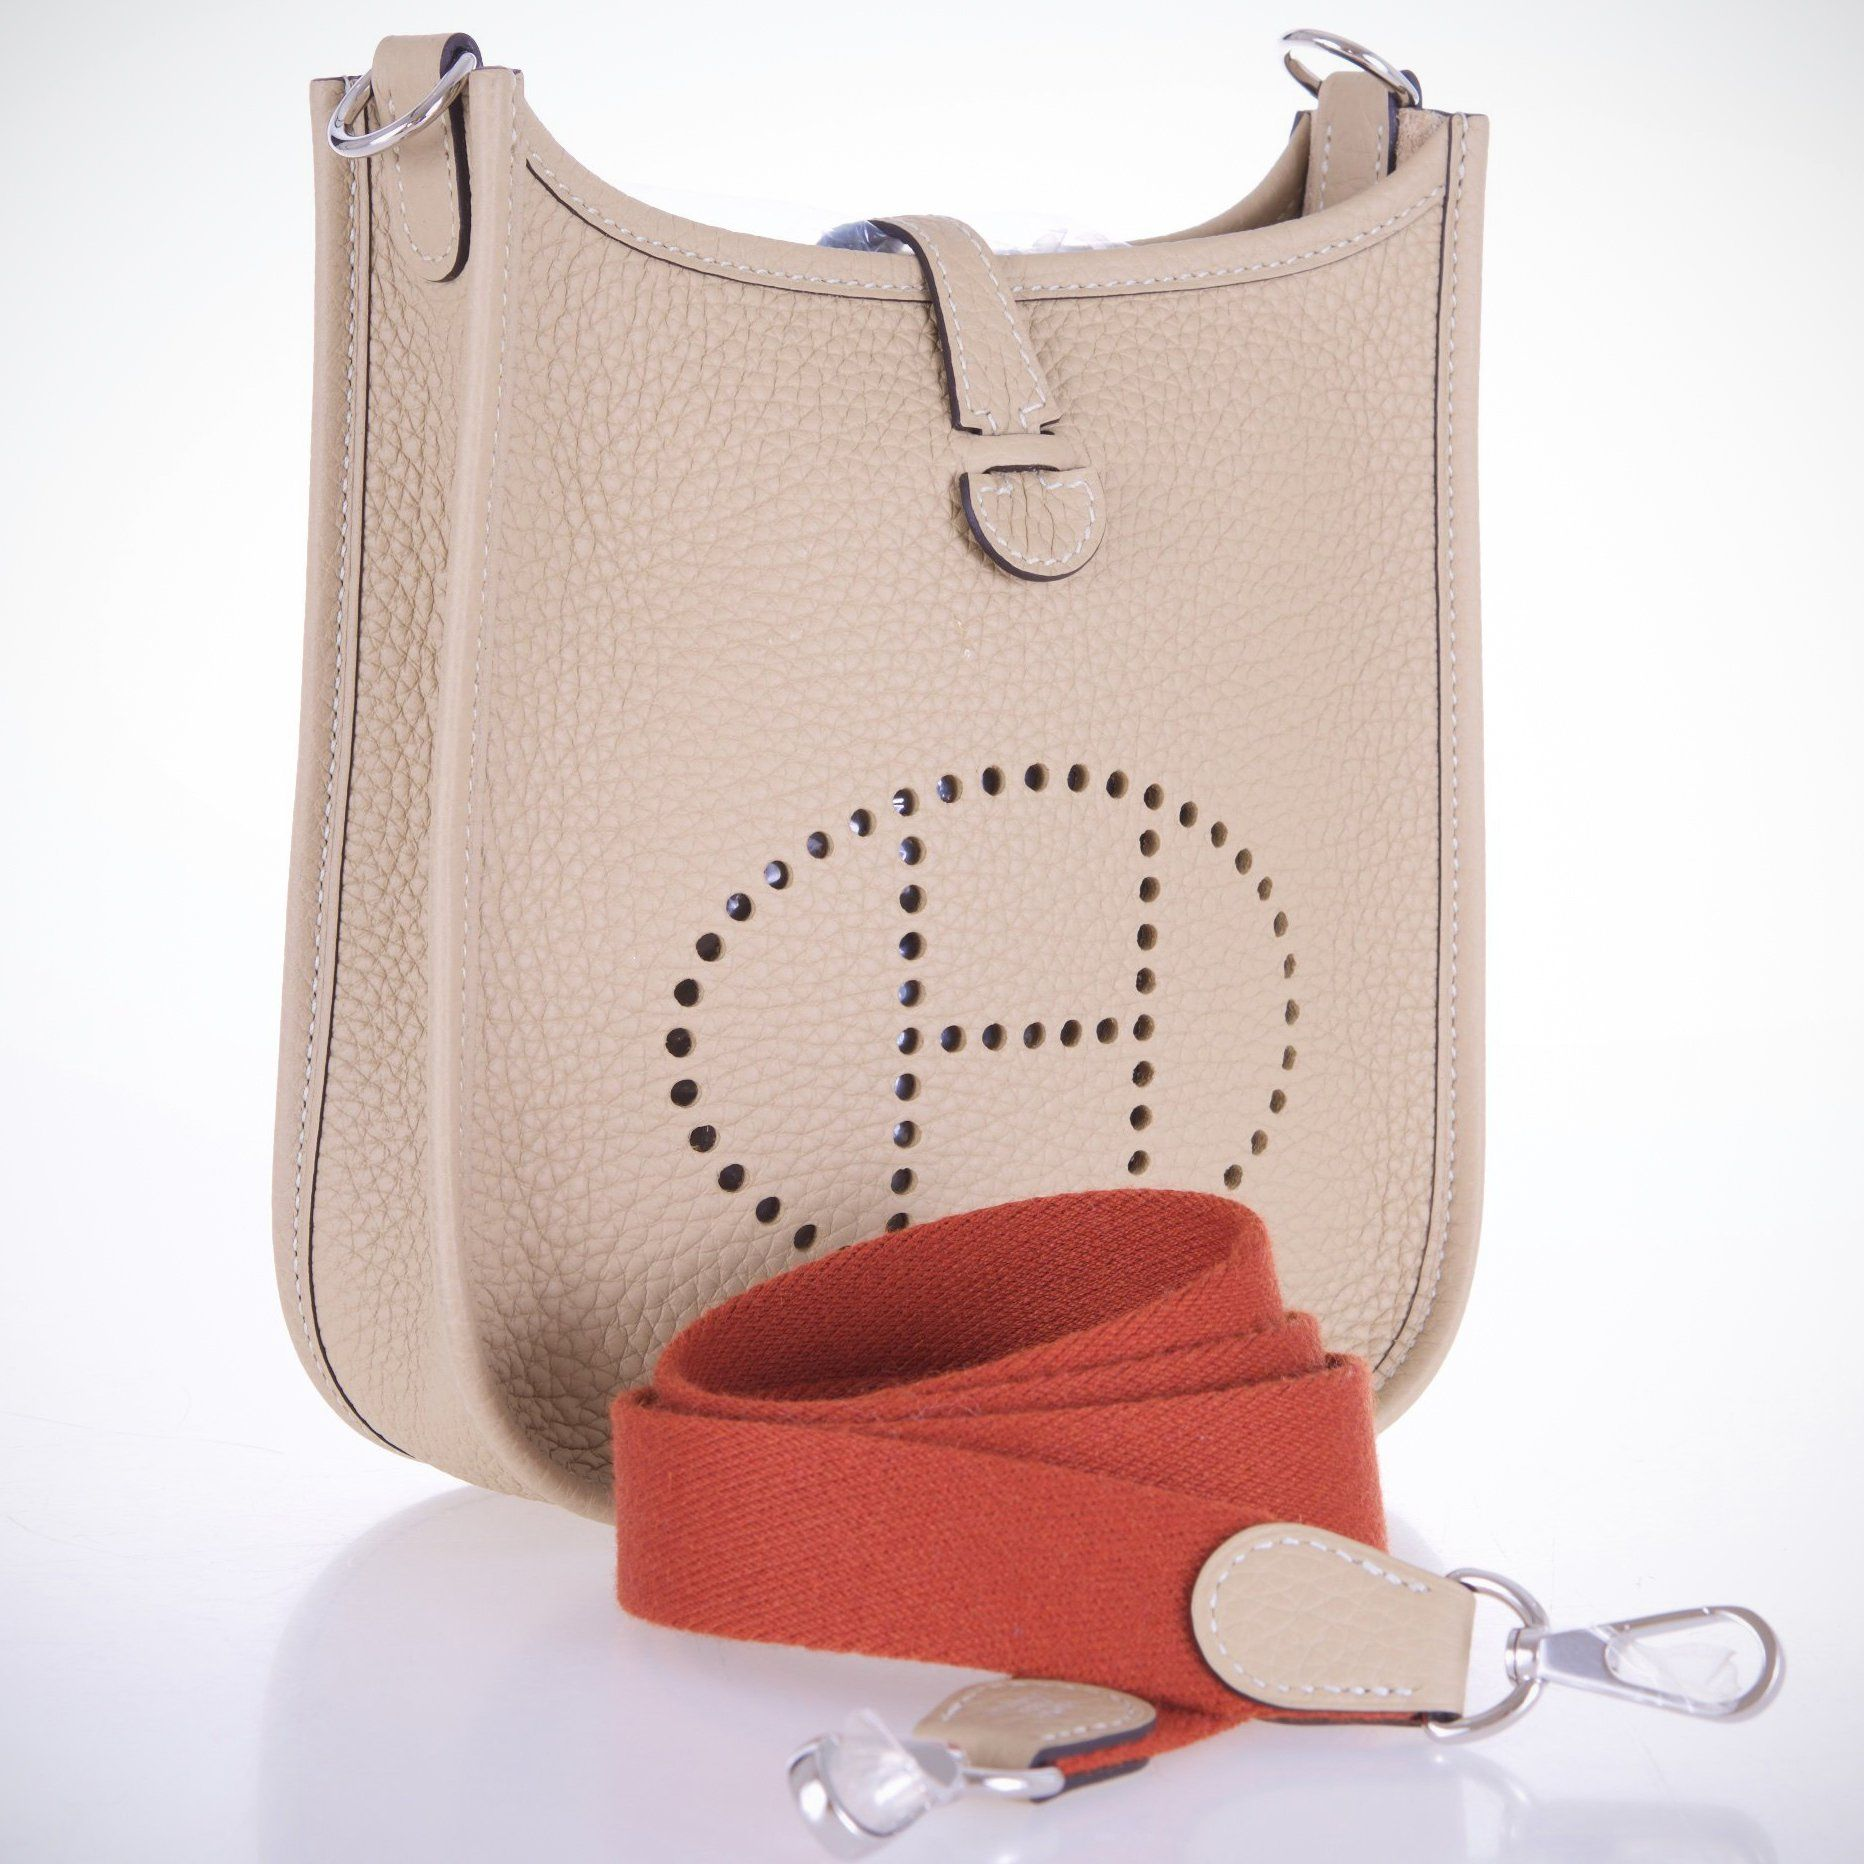 Fancy - Hermes Evelyne TPM New Color Trench Beige Mini Amazone Strap Hermes  Bags 164665f9f